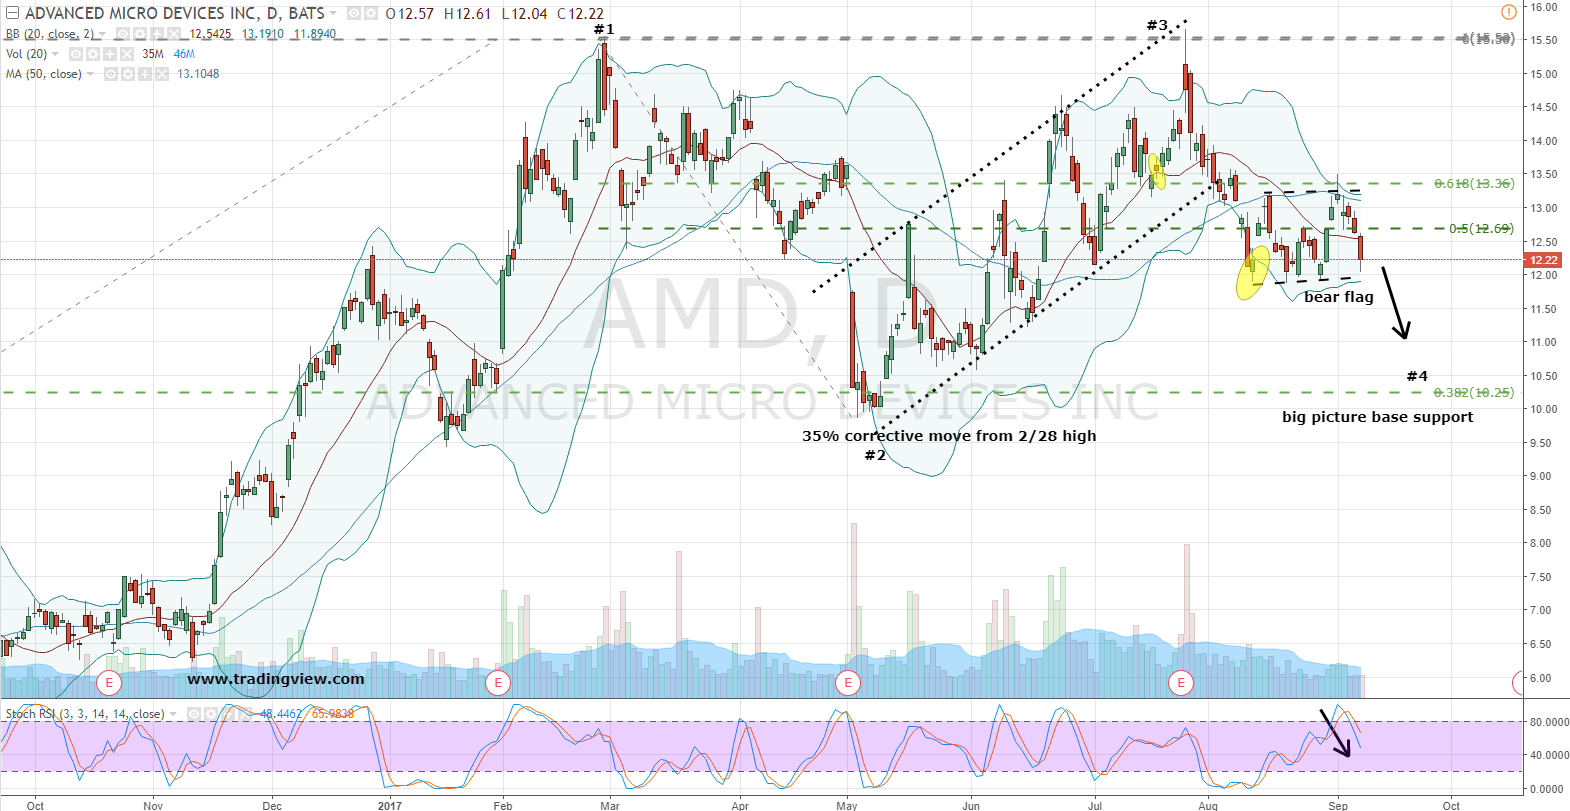 Aviva PLC Has $6.44 Million Position in Advanced Micro Devices, Inc. (AMD)